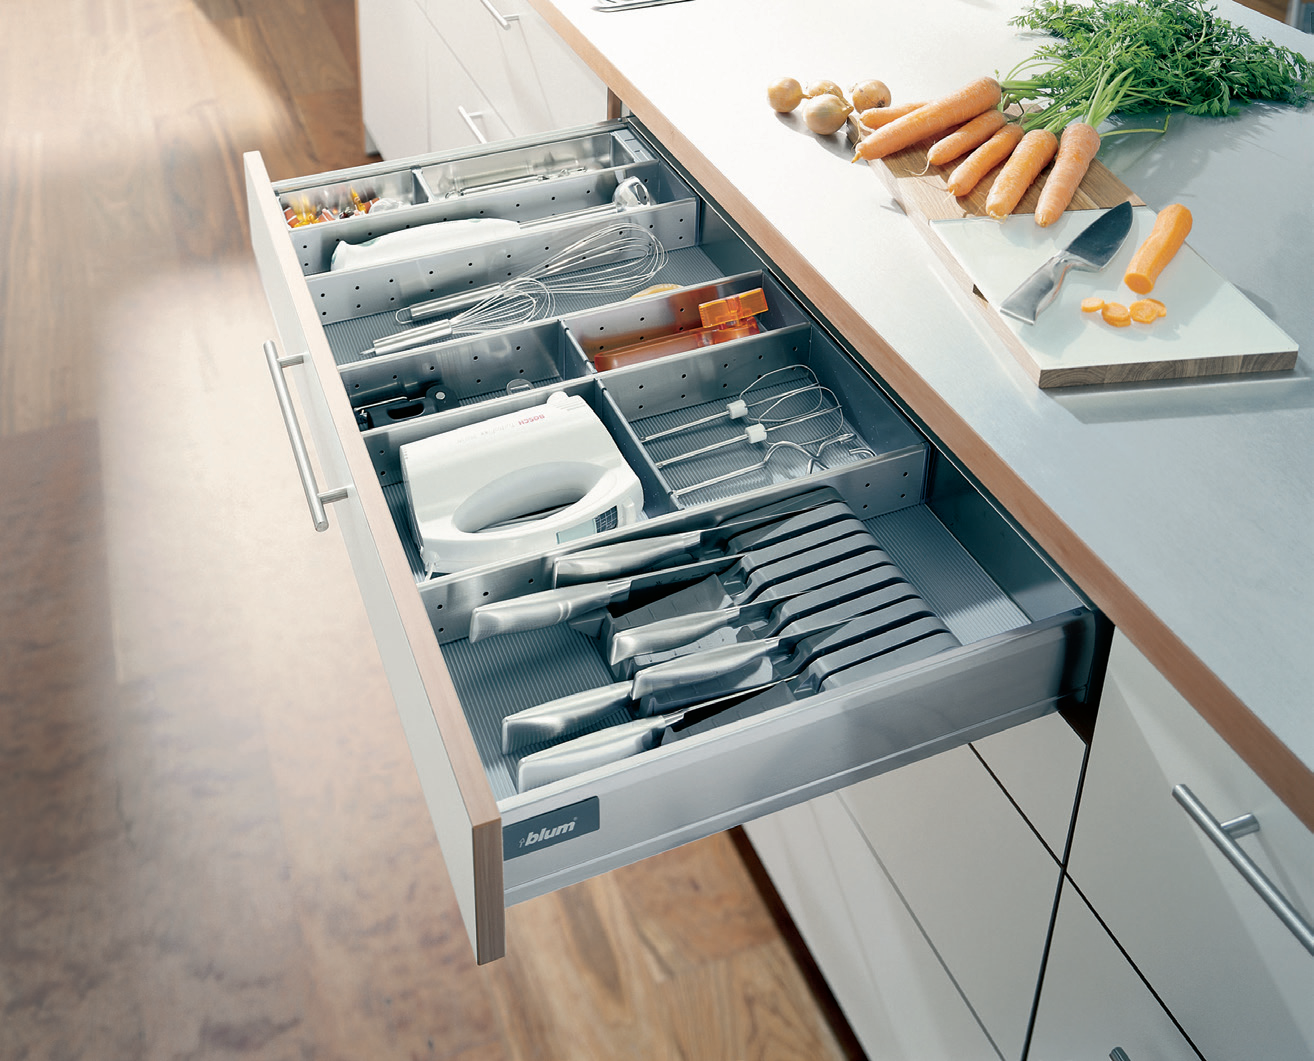 Blum ORGALINE dividers for kitchen utensils, knives & small electric ...